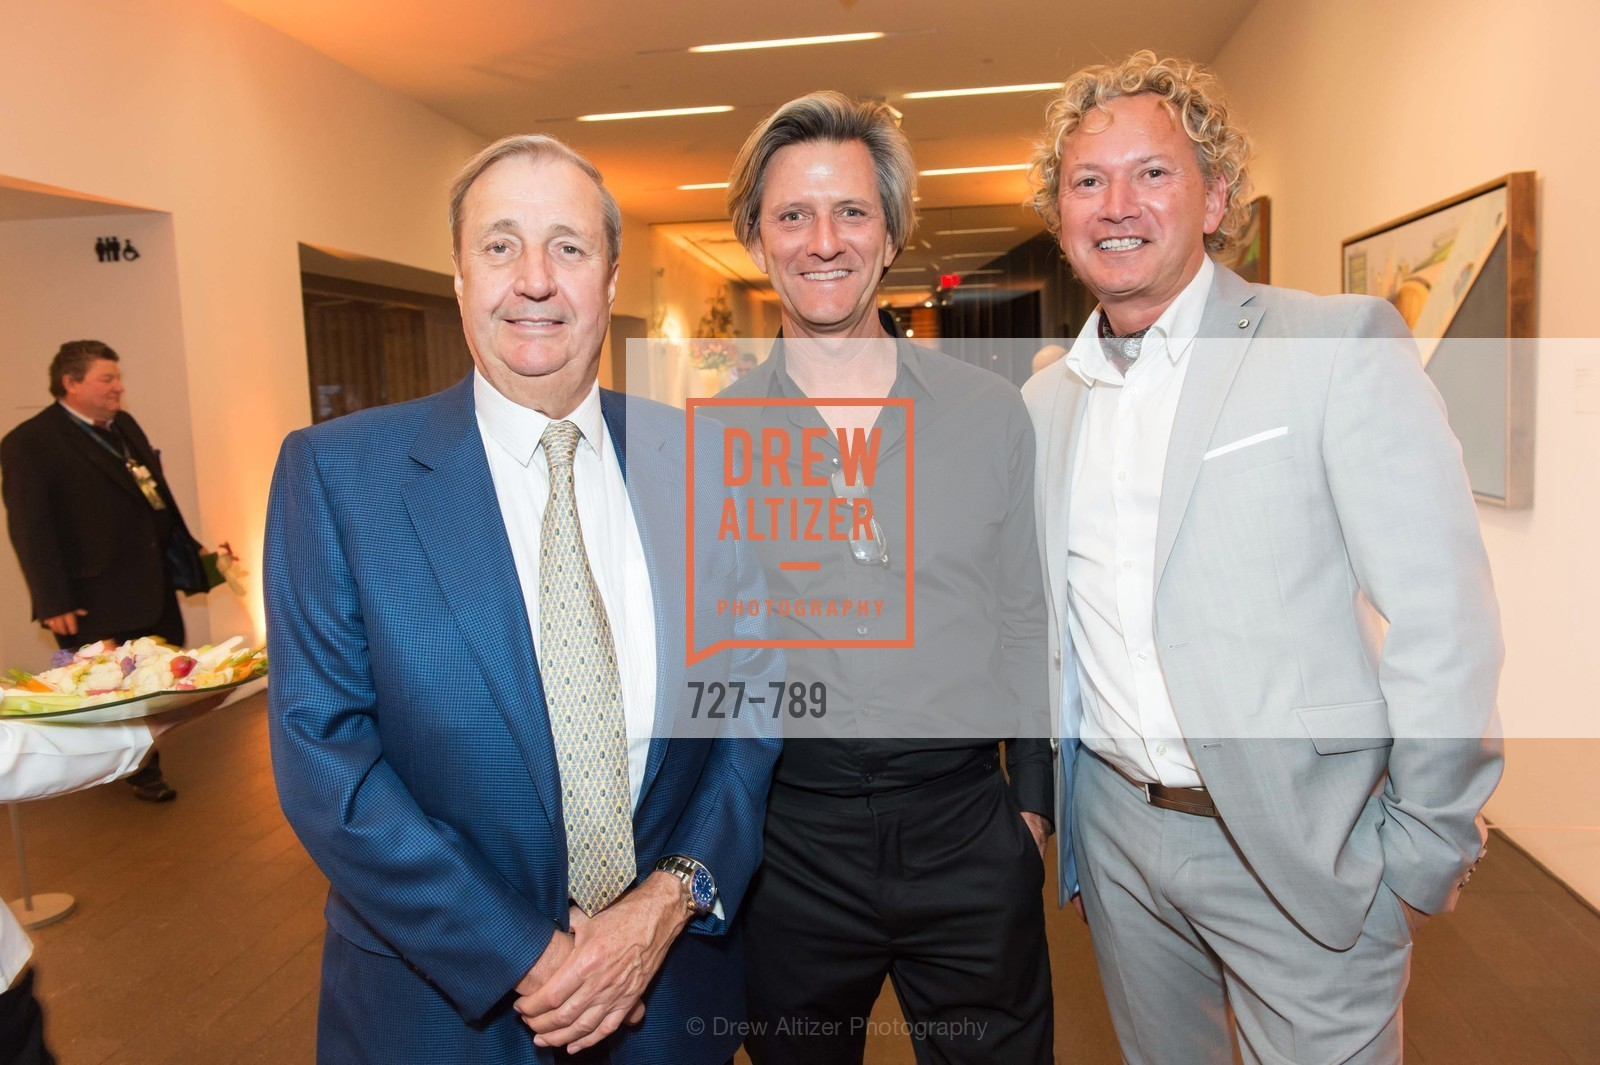 Dan Nola, Chris Burgen, Martin Hogis, ALONZO KING LINE'S Ballet Spring Gala 2015, US, April 11th, 2015,Drew Altizer, Drew Altizer Photography, full-service agency, private events, San Francisco photographer, photographer california